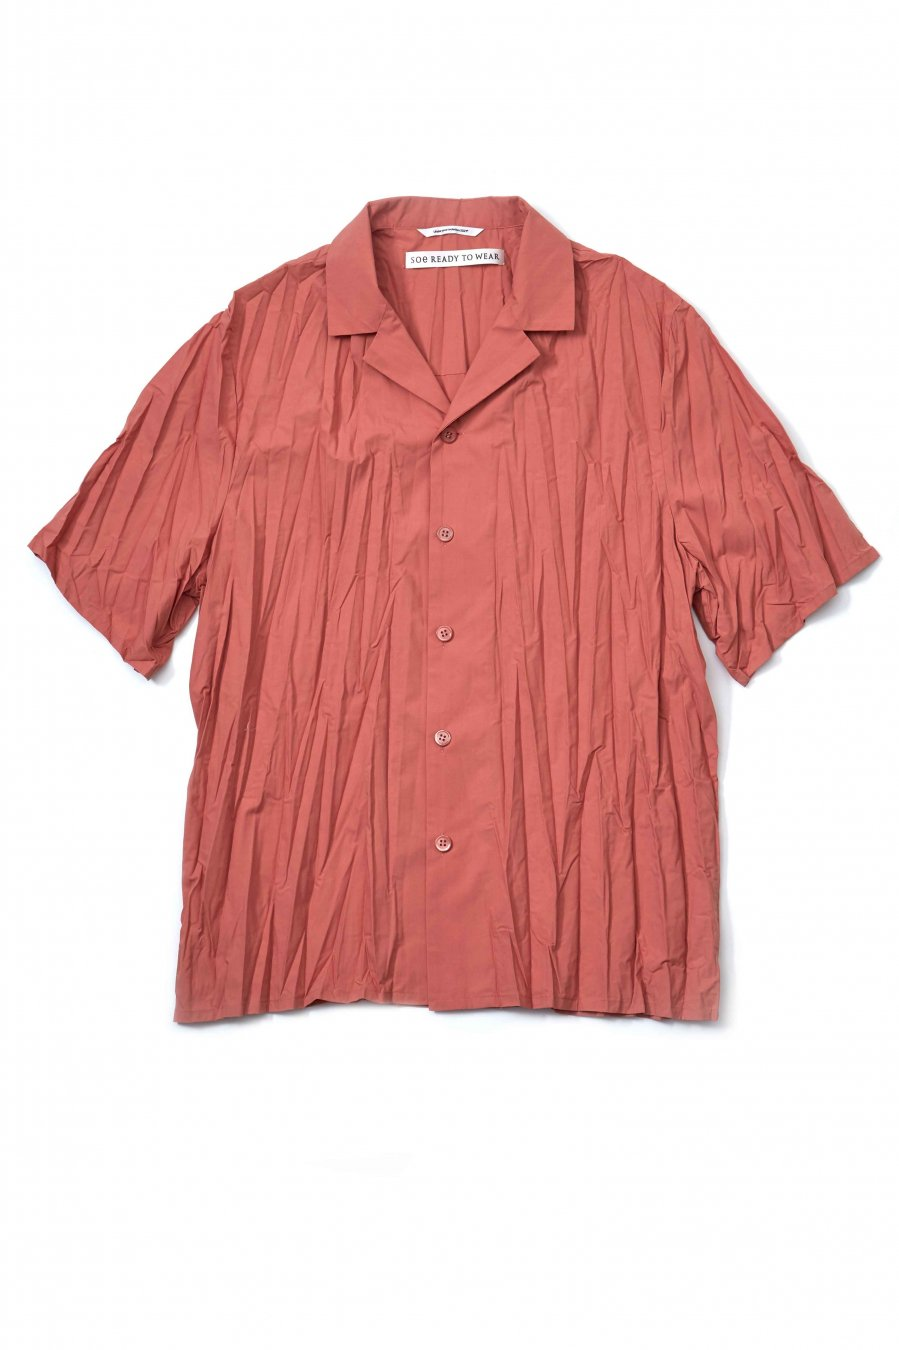 soe  Pleated H/S Shirt(PINK)<img class='new_mark_img2' src='https://img.shop-pro.jp/img/new/icons15.gif' style='border:none;display:inline;margin:0px;padding:0px;width:auto;' />